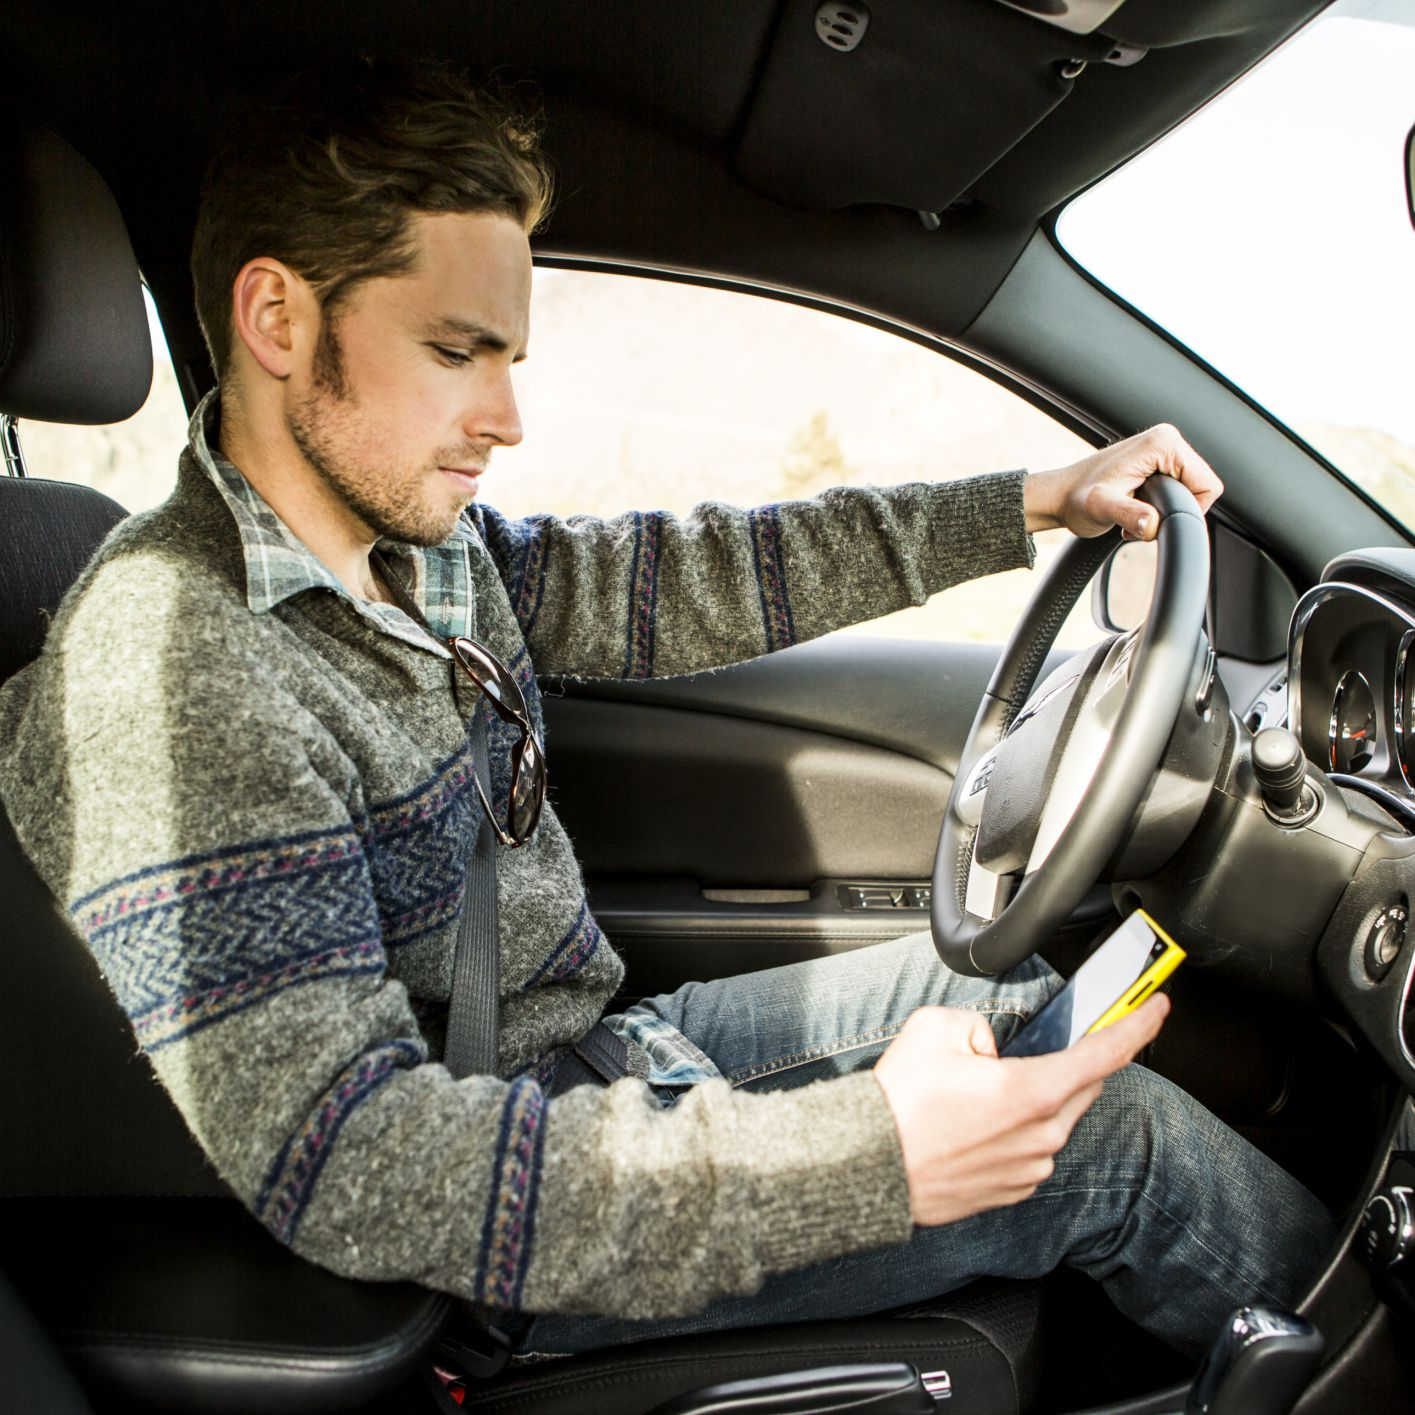 Causes and Effects of Driving Distracted